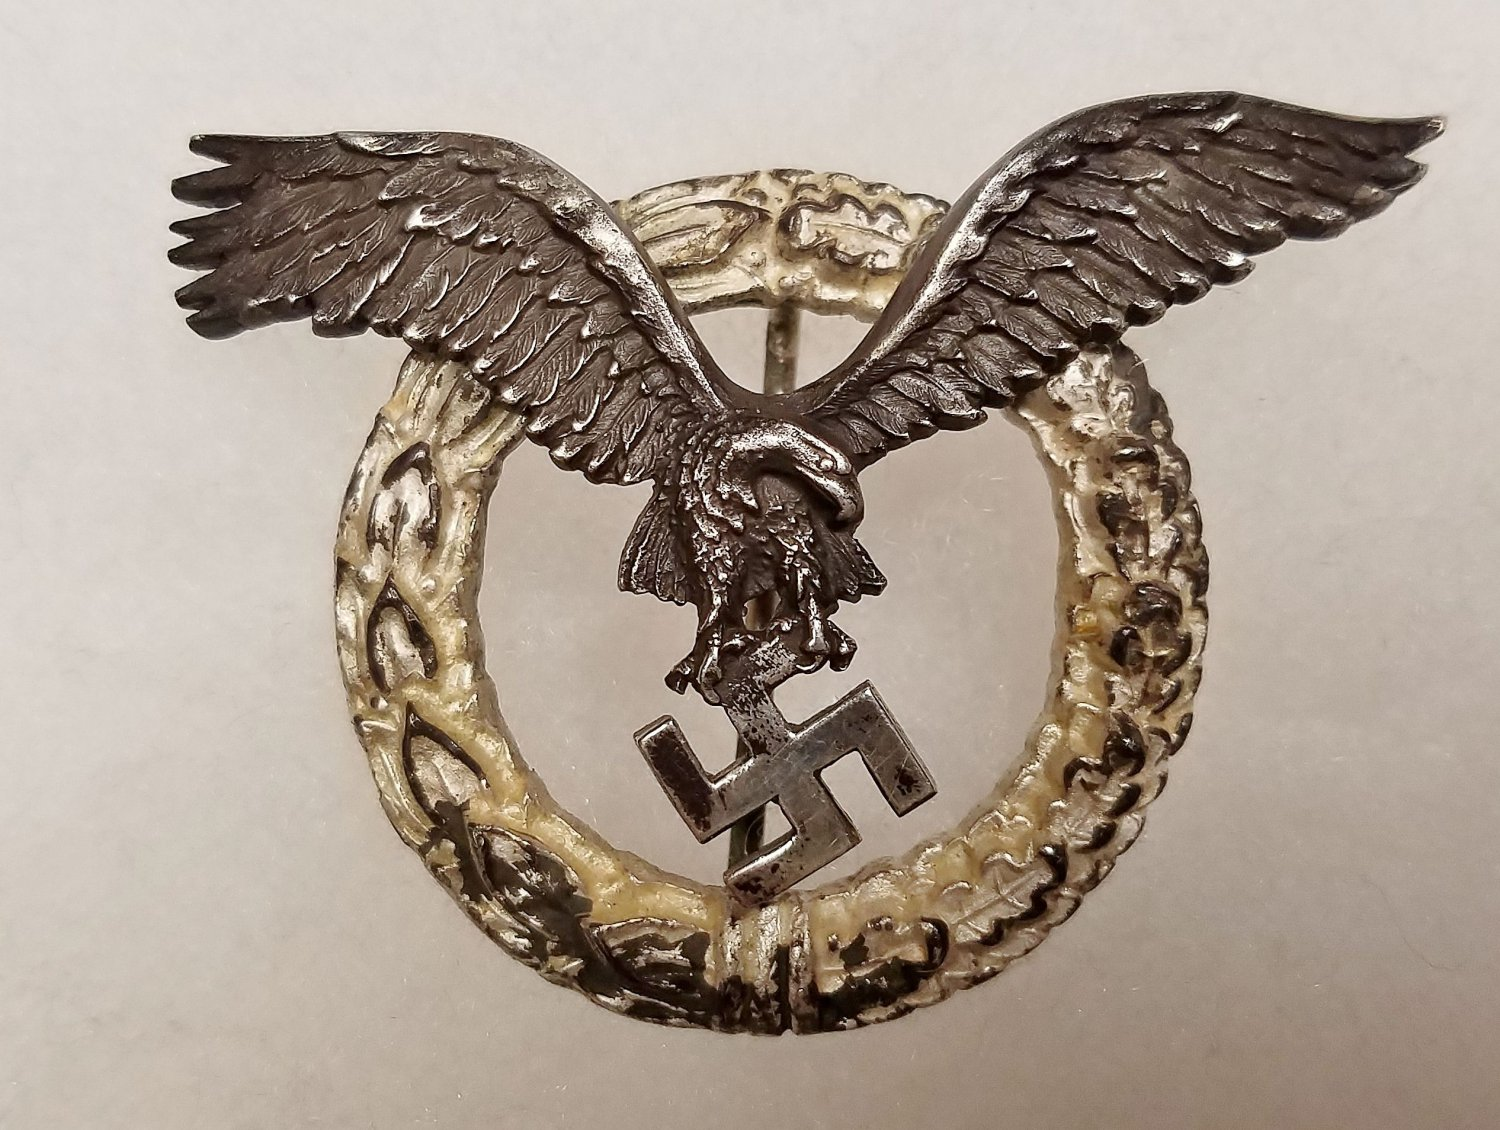 WWII WW2 GERMAN NAZI LUFTWAFFE PILOT'S BADGE - ROUND WREATH VERSION *RARE*